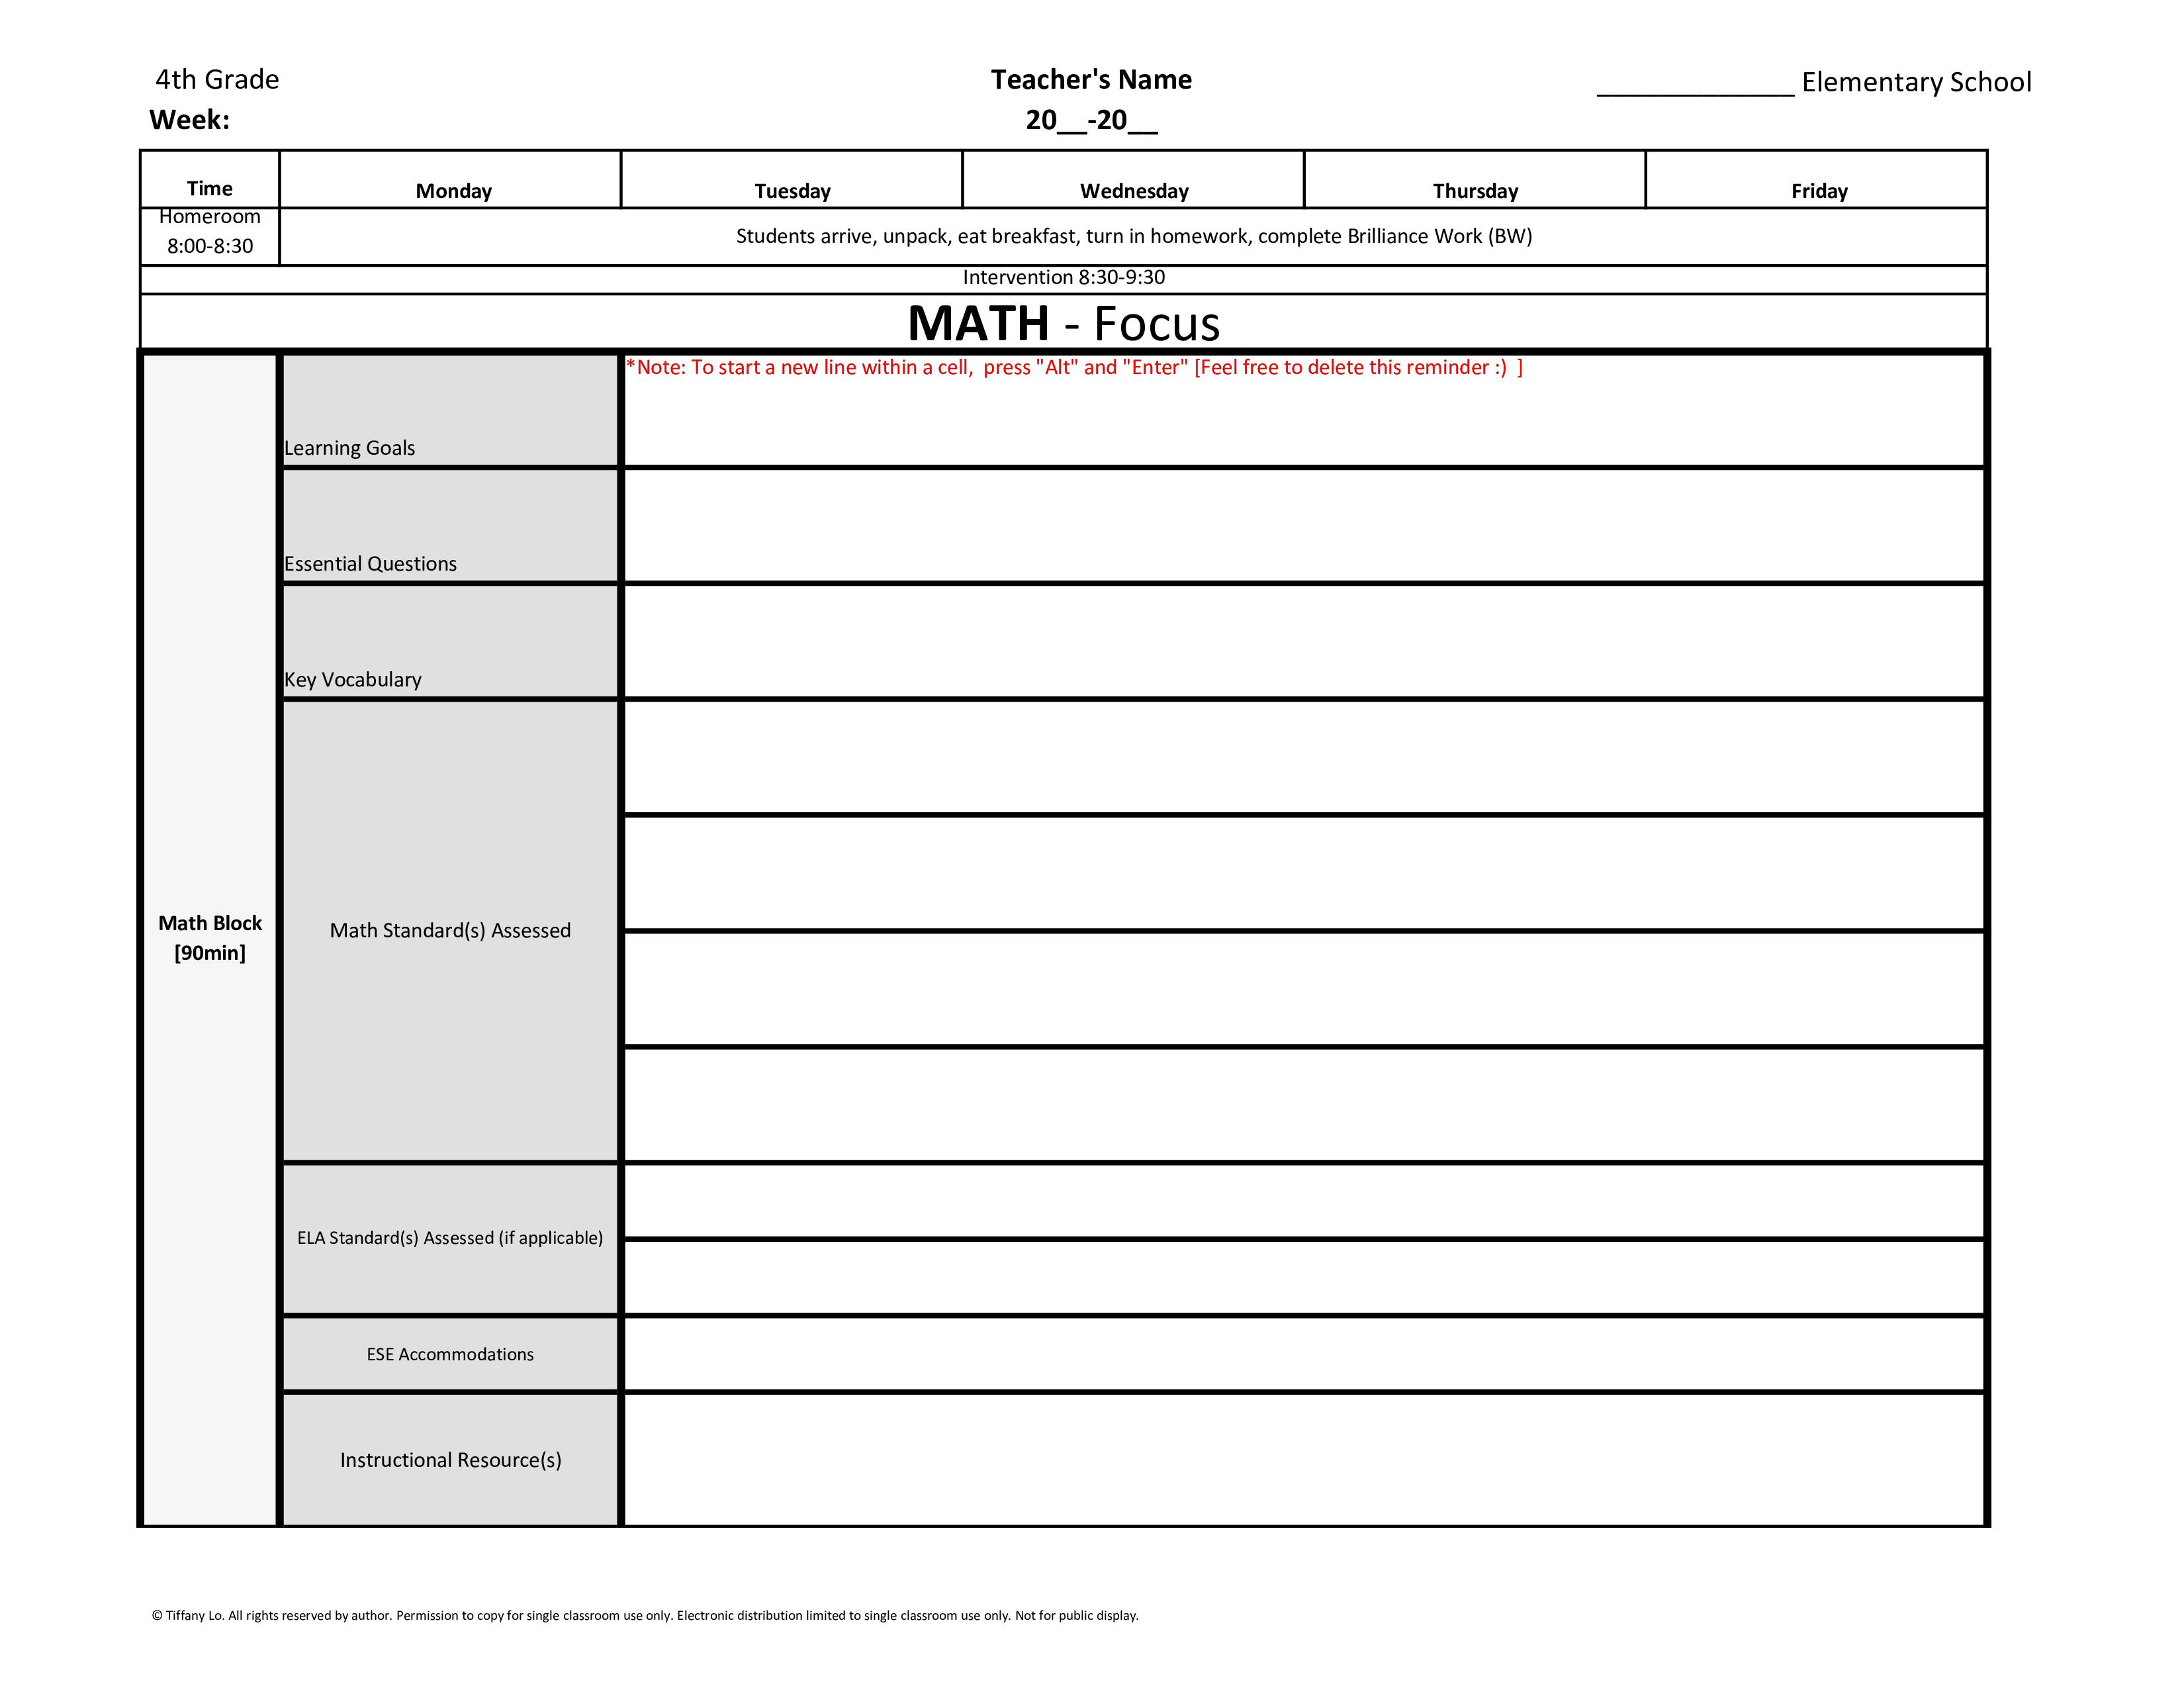 4th Fourth Grade Common Core Weekly Lesson Plan Template W